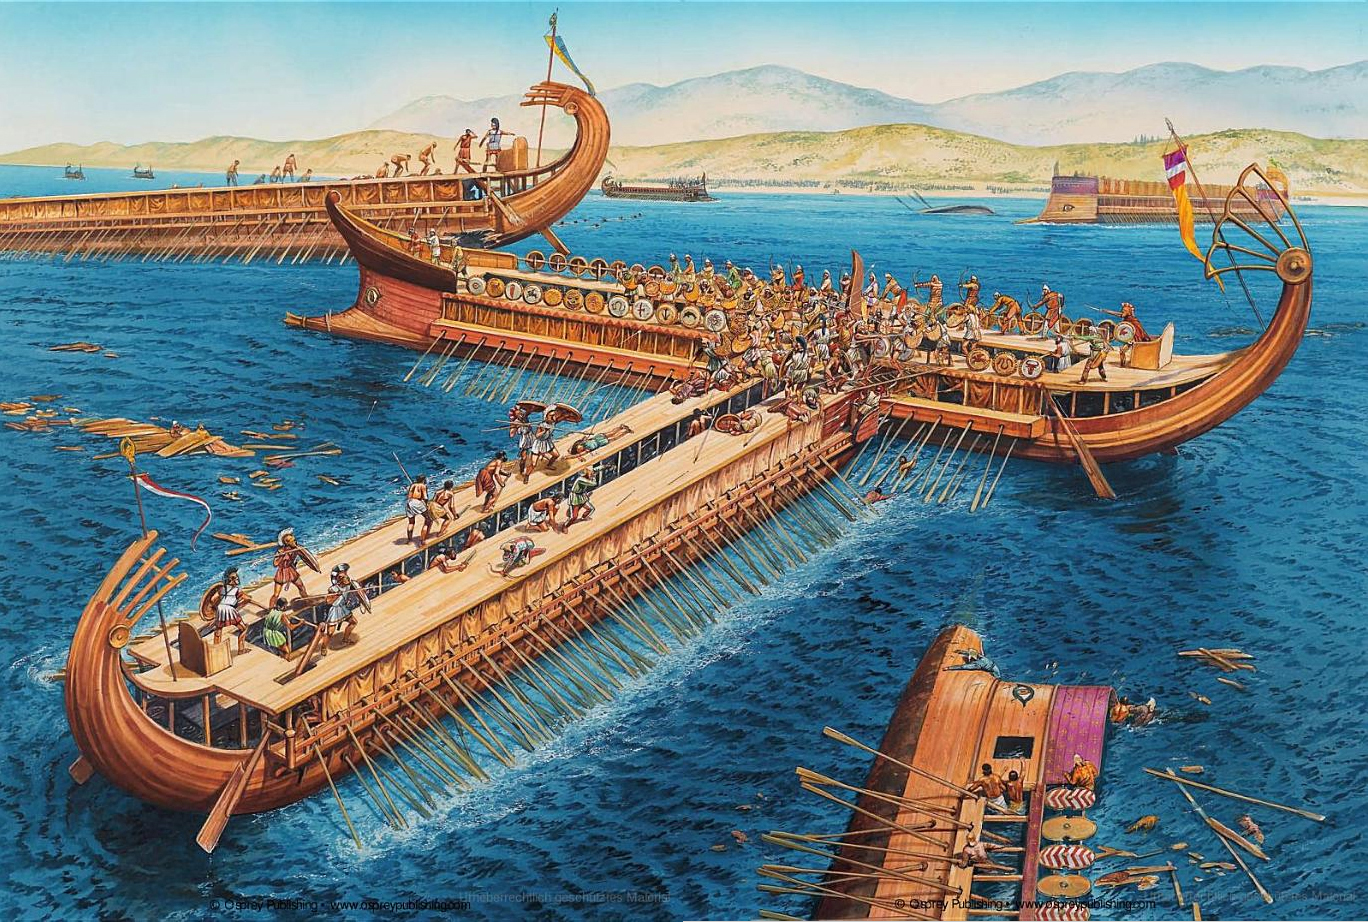 essay on battle of salamis Ancient greece - analyzing the battle of salamis title length color rating : ancient leadership: themistocles and salamis essay - some say themistocles was the most successful general in ancient and some say he was just.